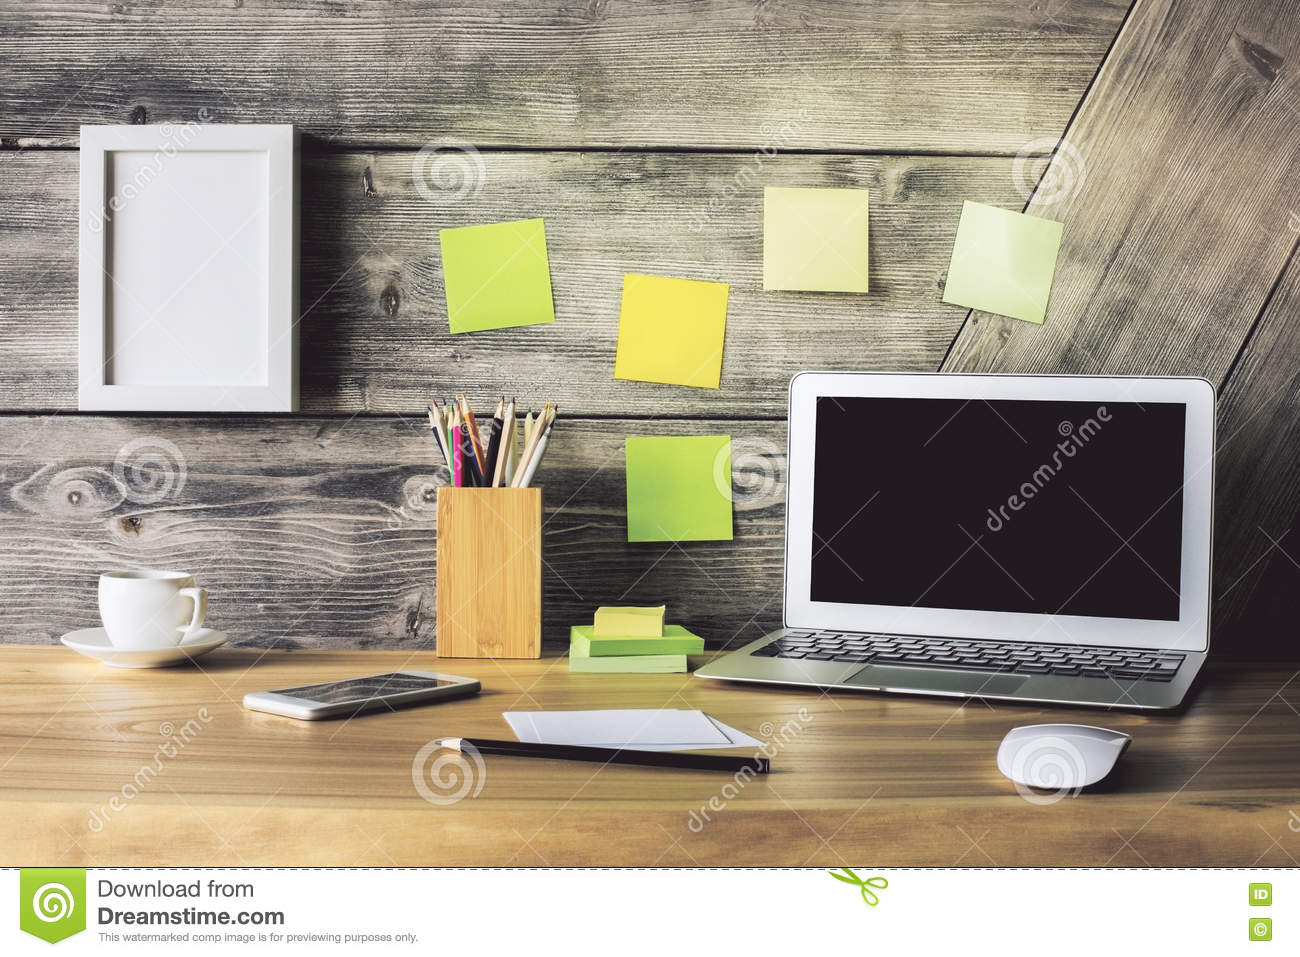 Creative desktop stock photo  Image of device, banner - 73857966